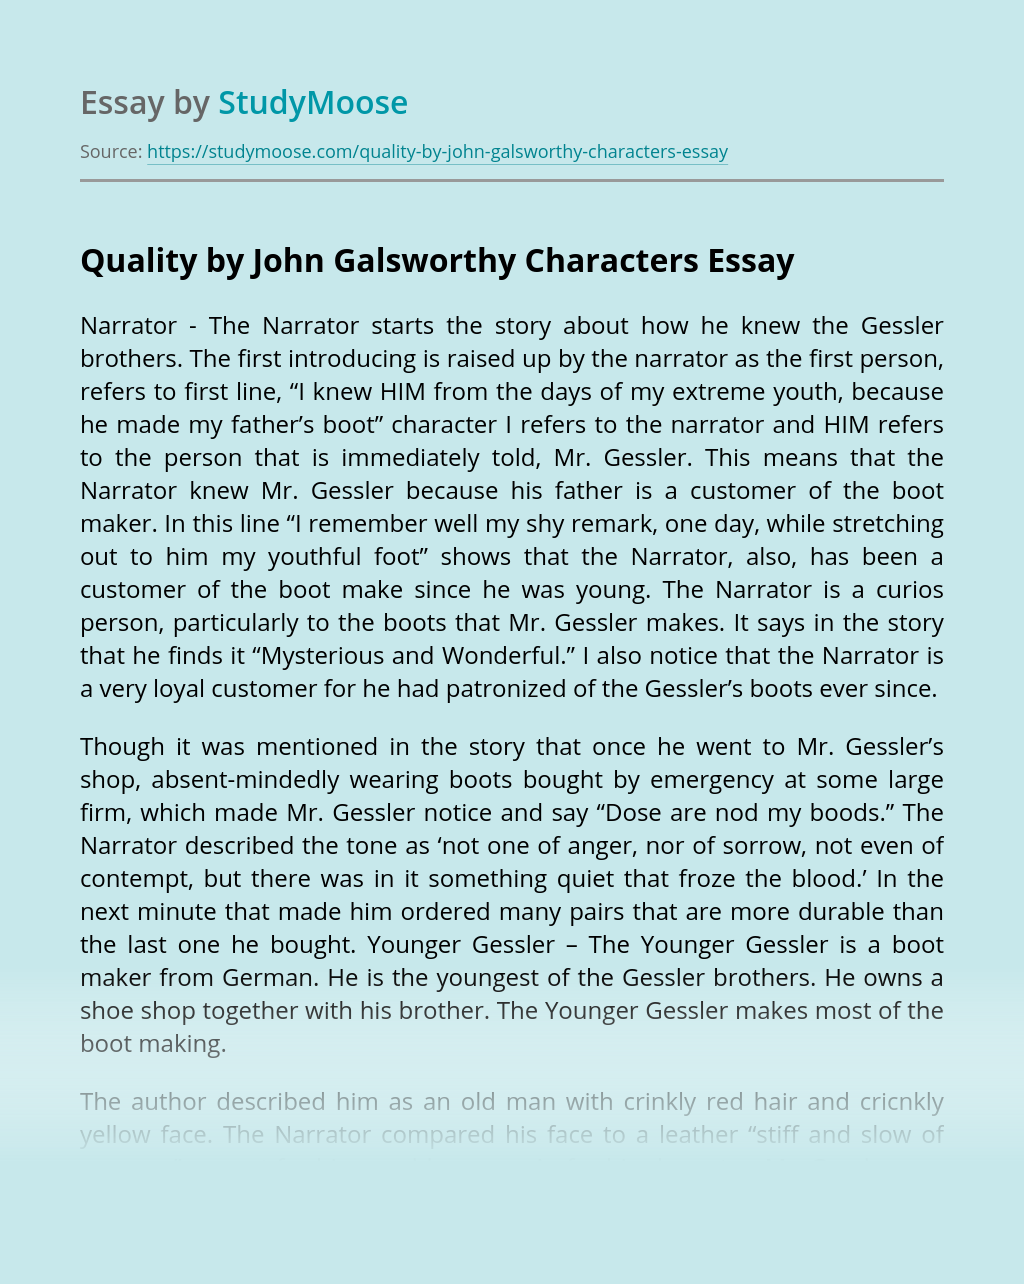 Quality by John Galsworthy Characters